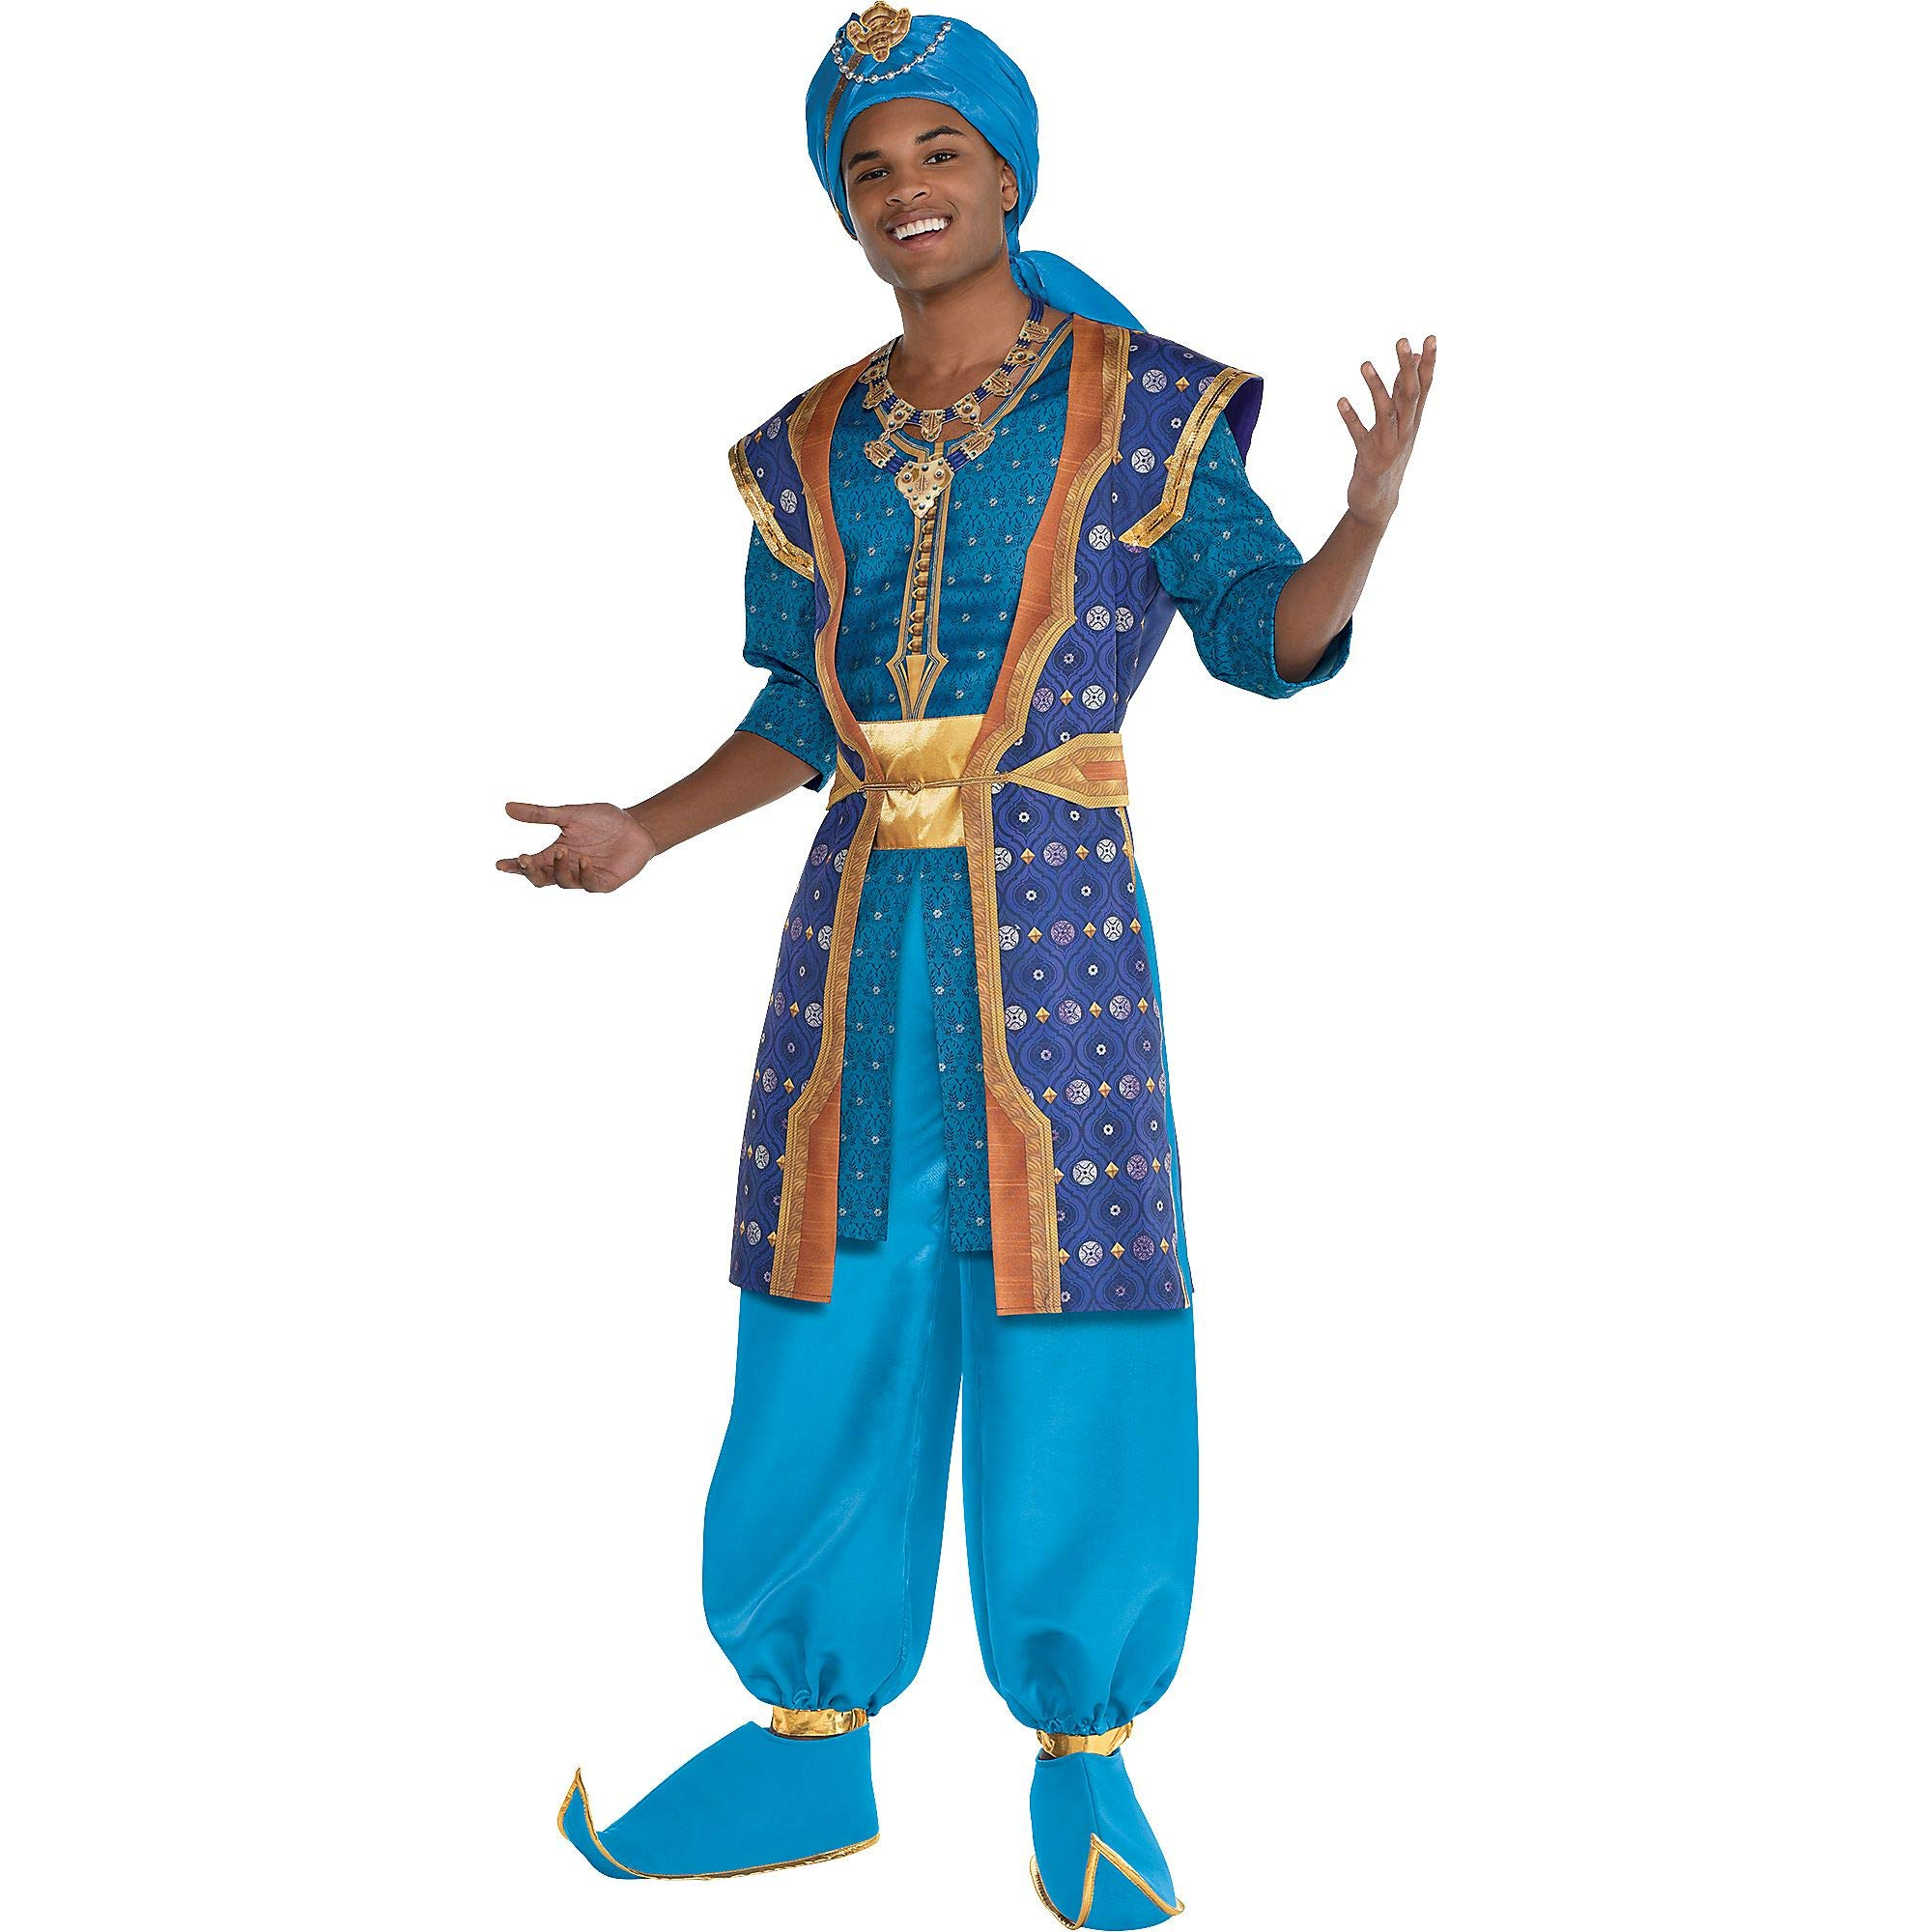 Party City Aladdin Live-Action Genie Parade Costume for Adults, Standard Size, Includes Shirt, Pants, Necklace, and More by Party City